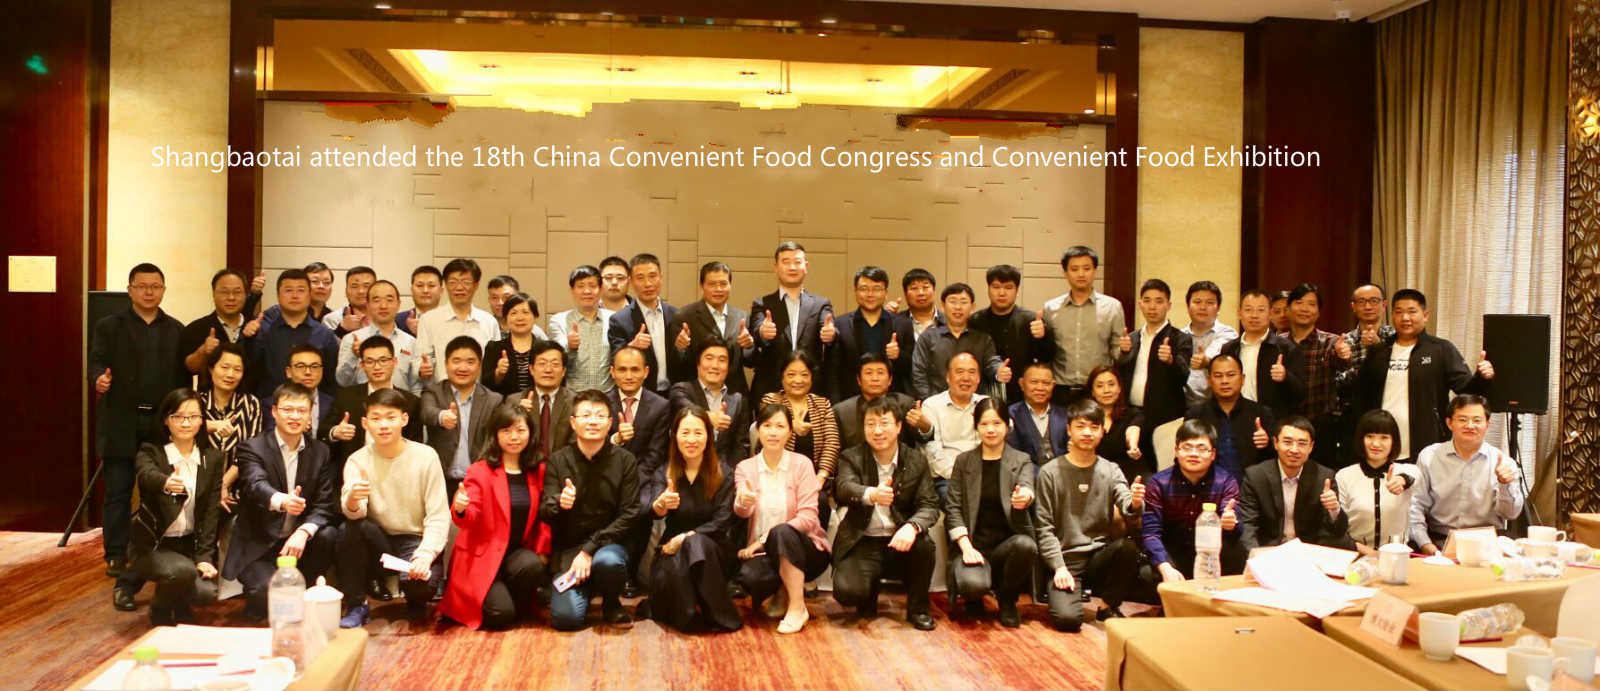 We Attended the 18th China Convenient Food Congress and Convenient Food Exhibition from 5 to 7 September